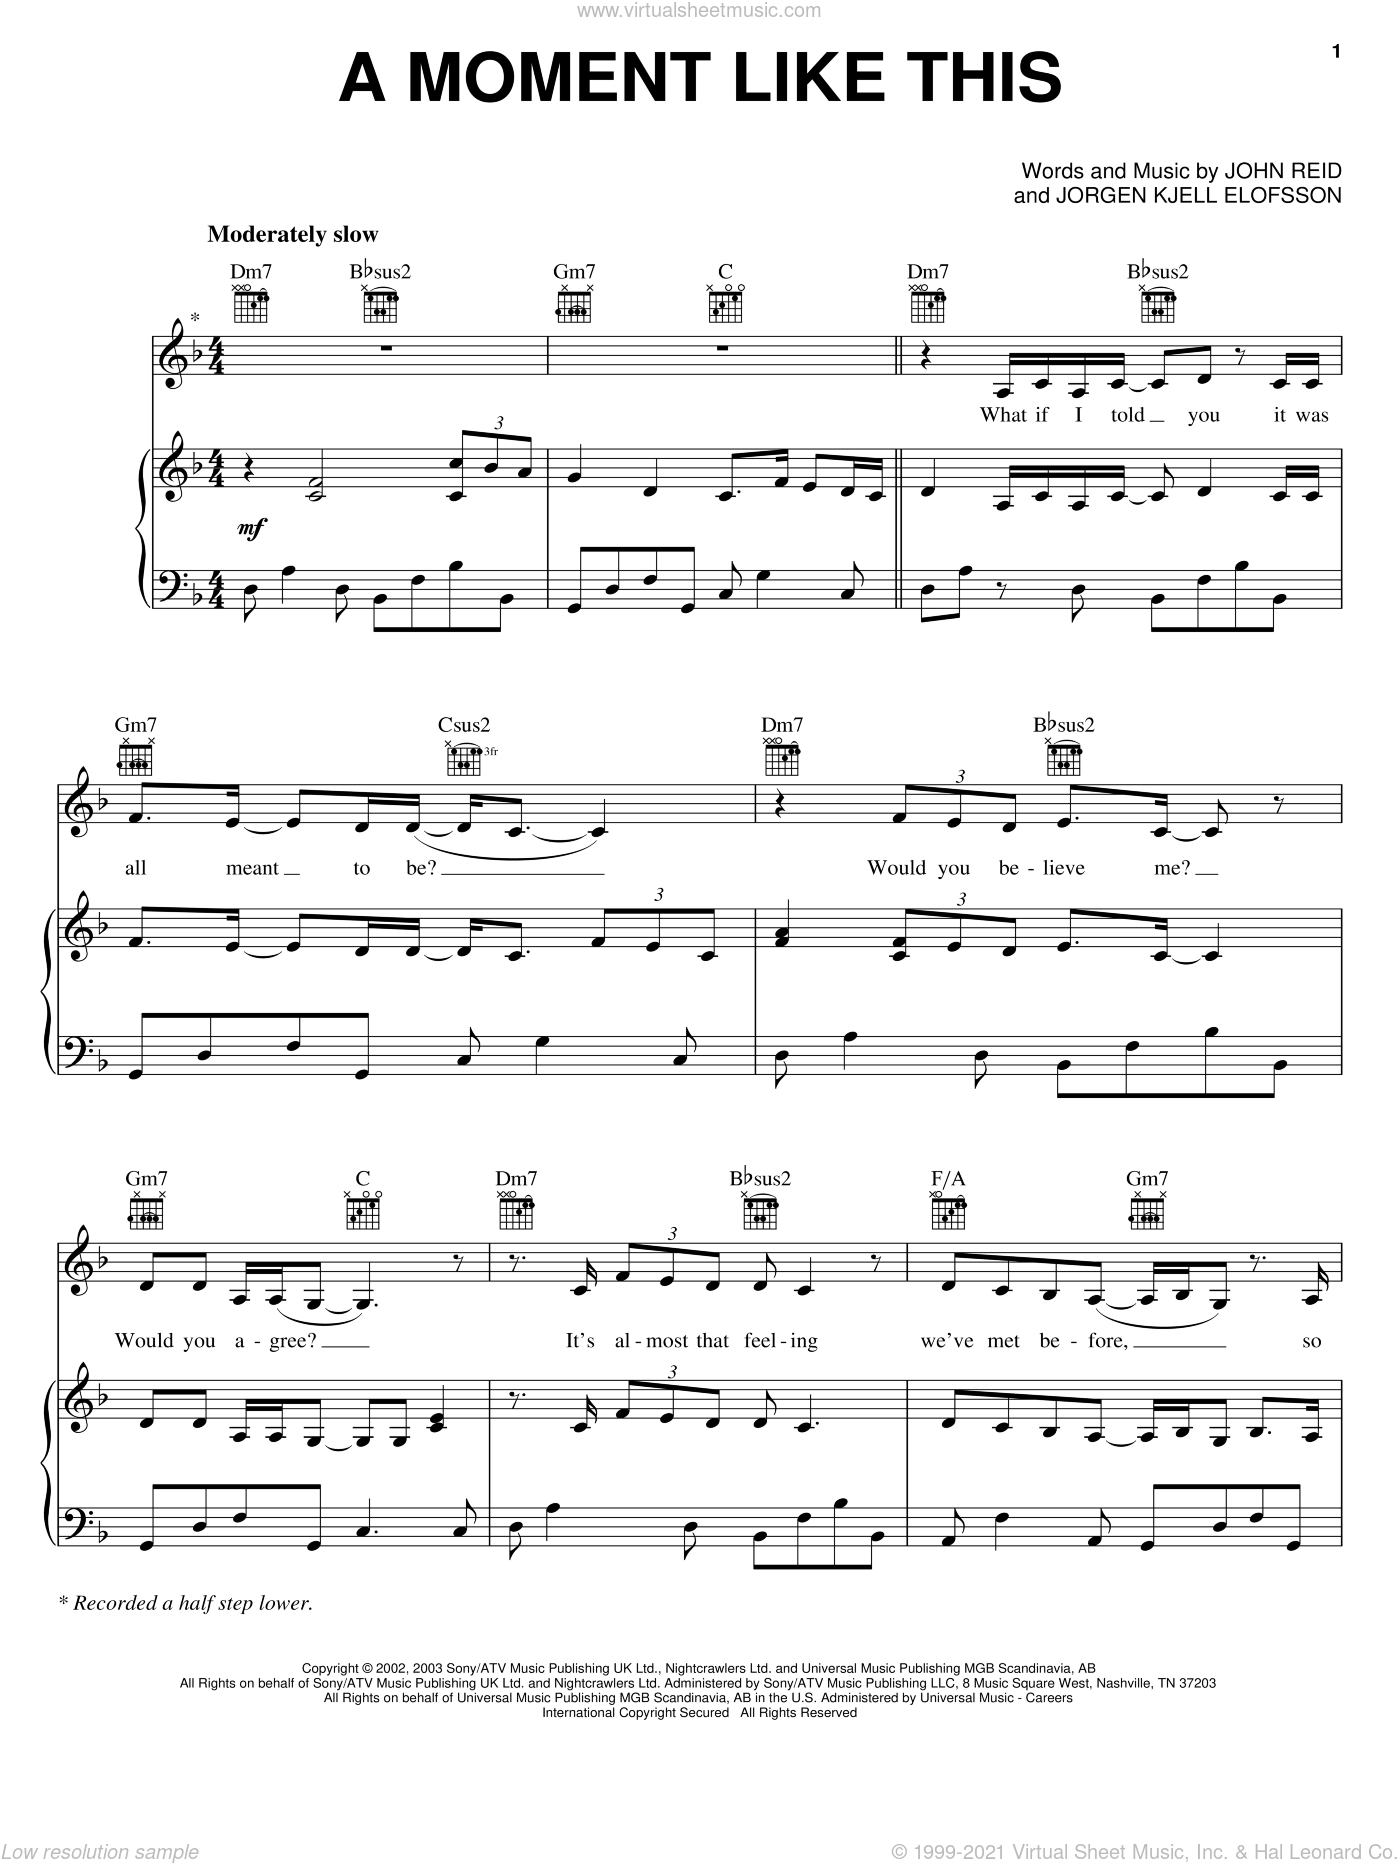 A Moment Like This sheet music for voice, piano or guitar by Kelly Clarkson, John Reid and Jorgen Elofsson, intermediate skill level